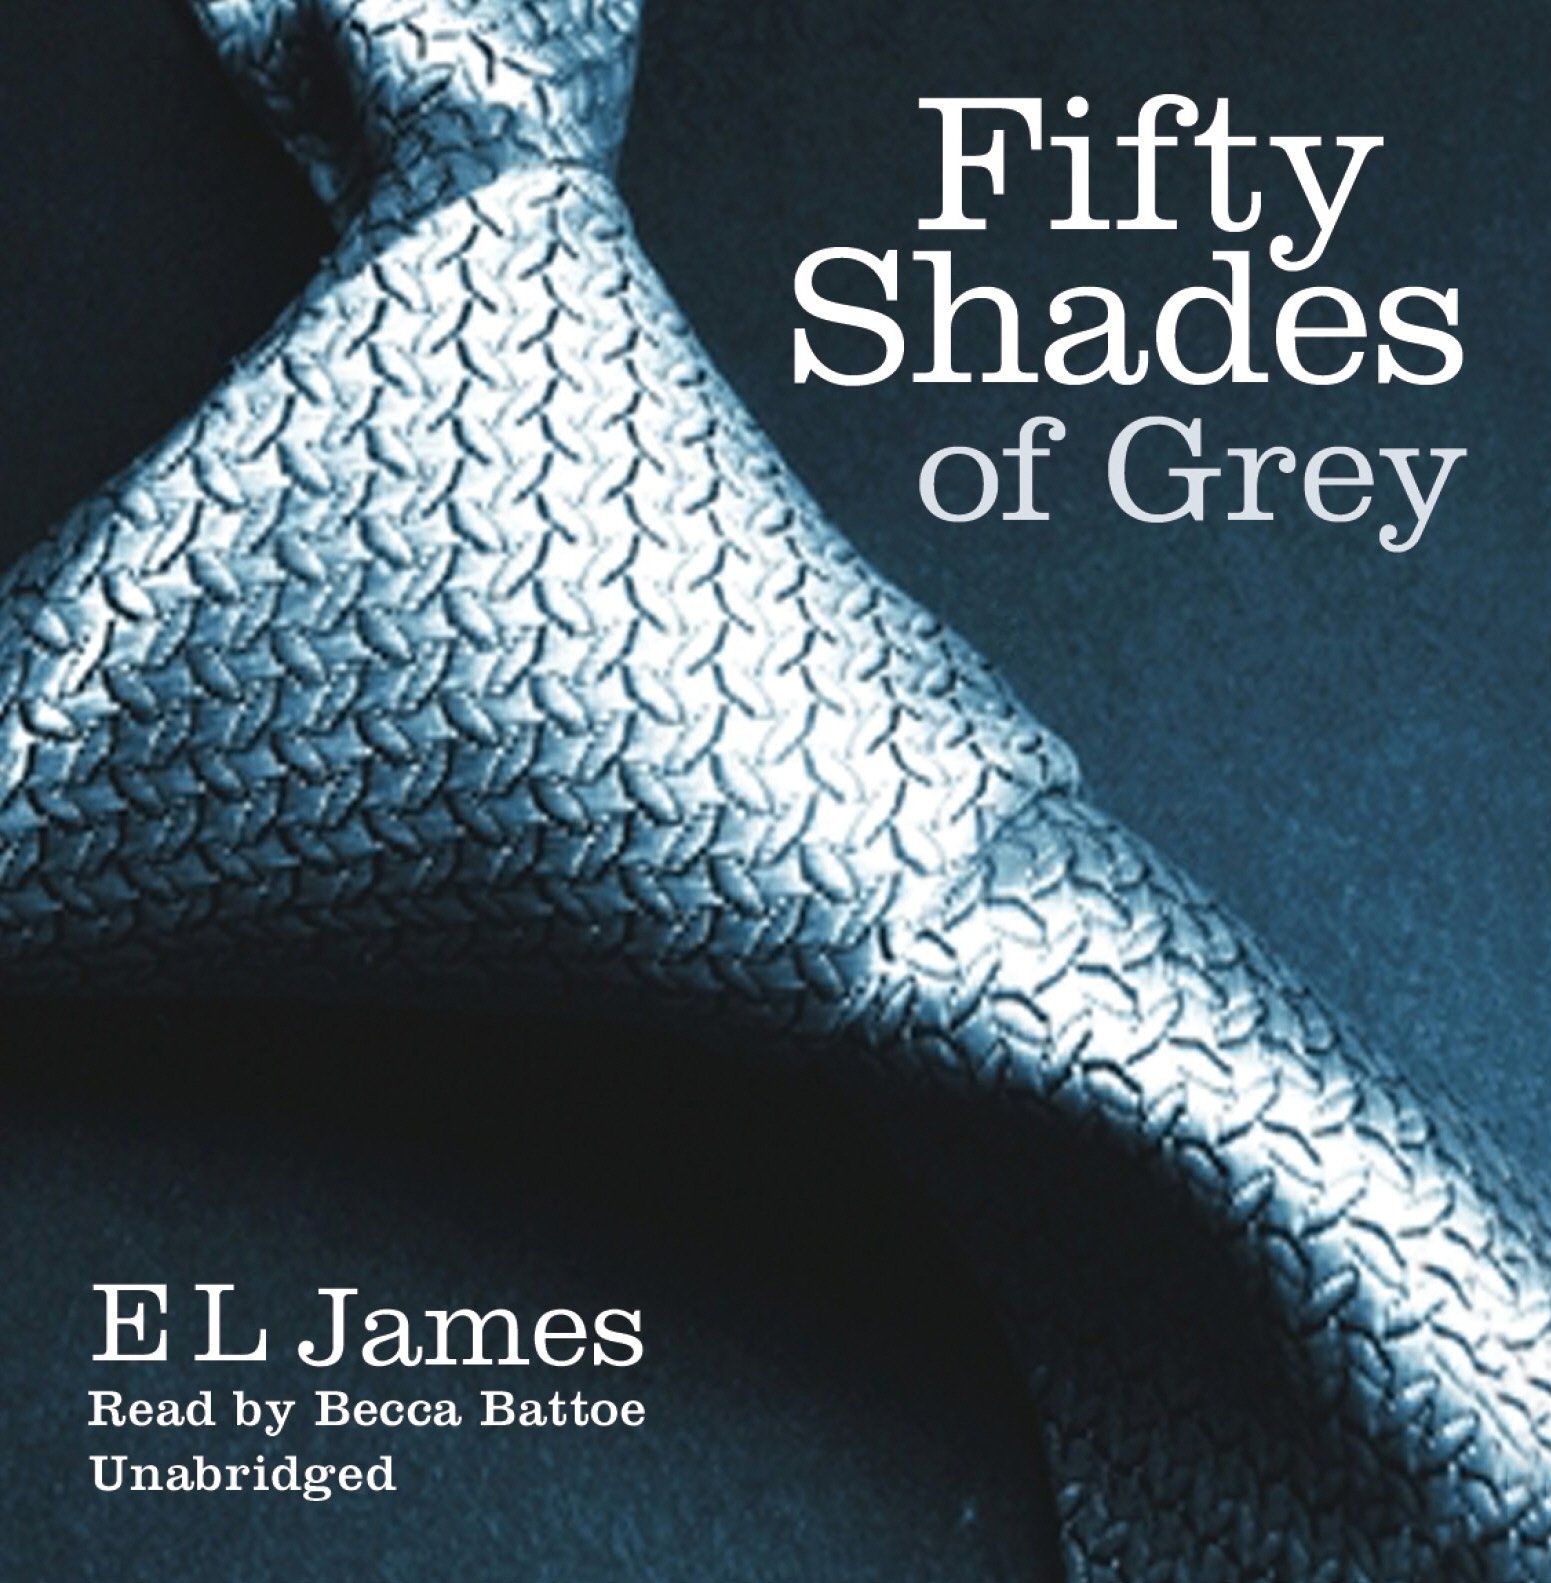 buy fifty shades of grey book online at low prices in buy fifty shades of grey book online at low prices in fifty shades of grey reviews ratings amazon in